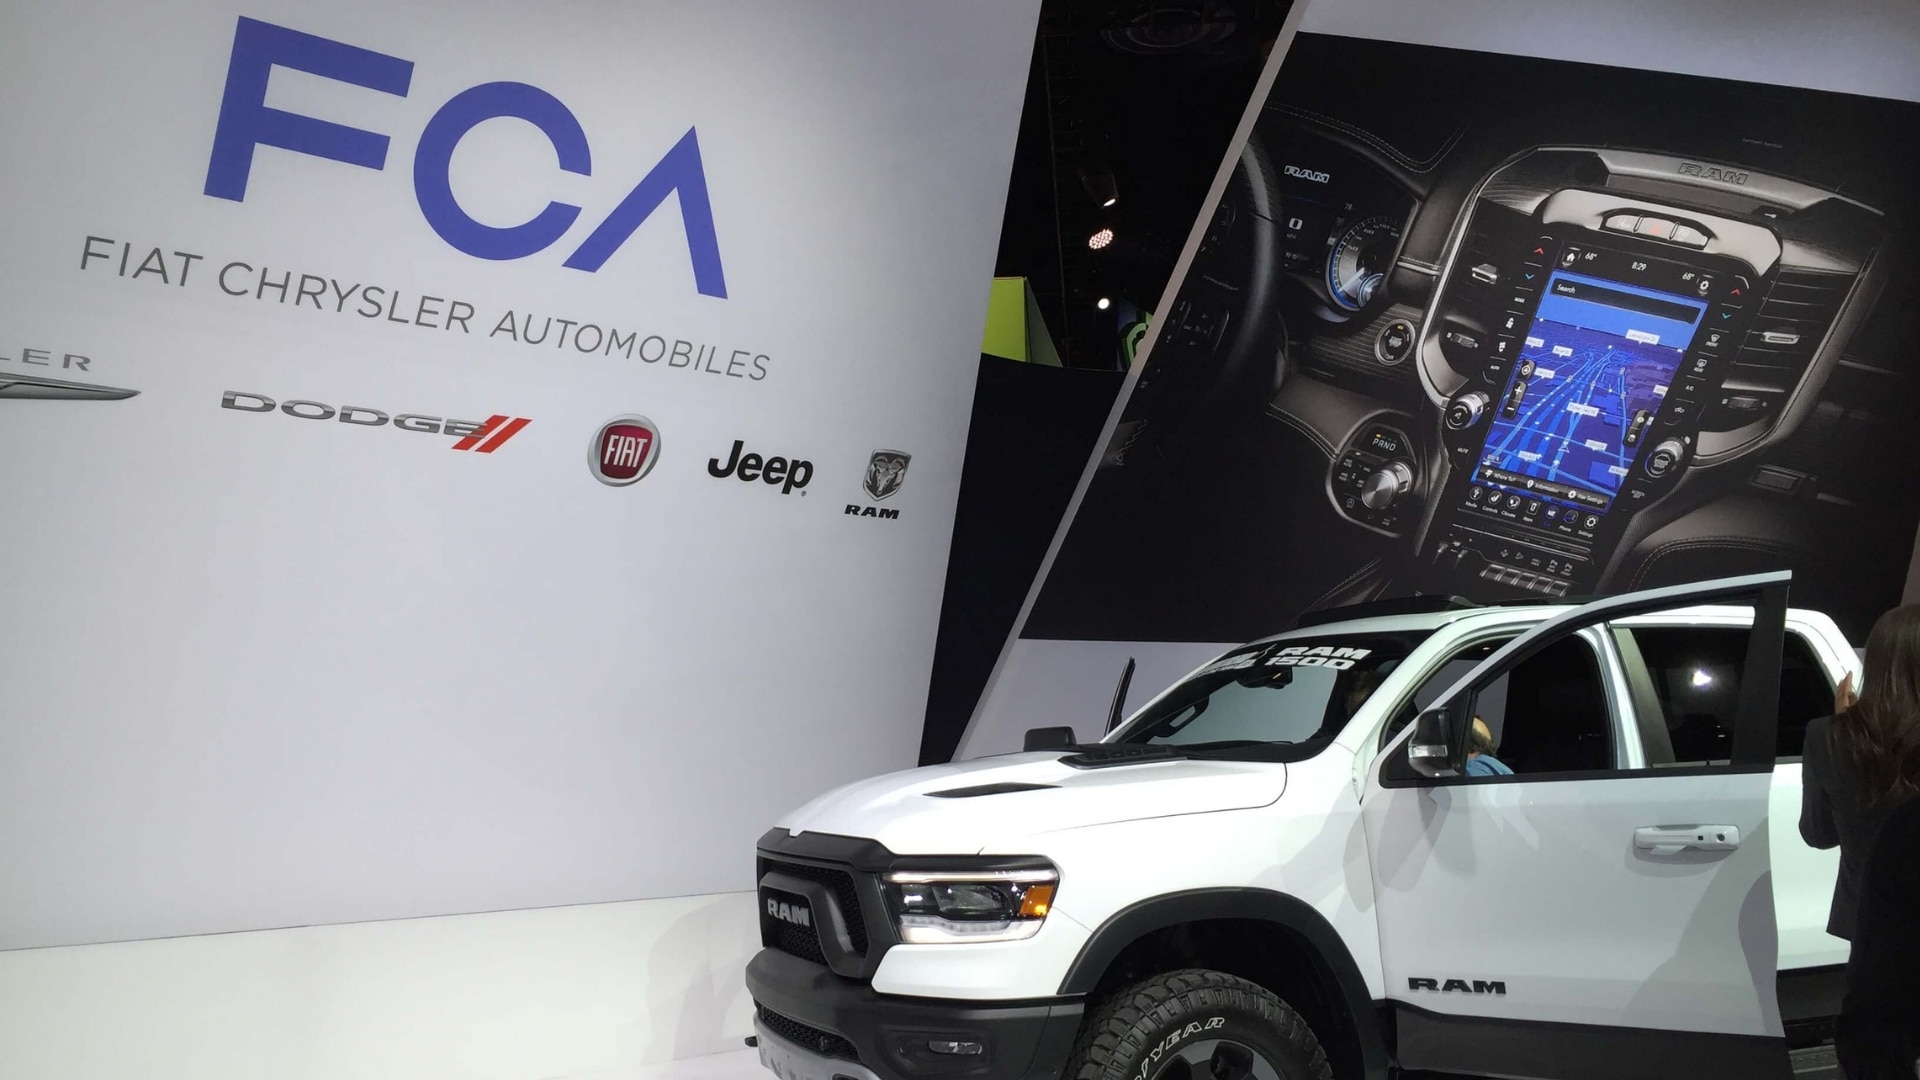 ram-fca-booth-ces-2019